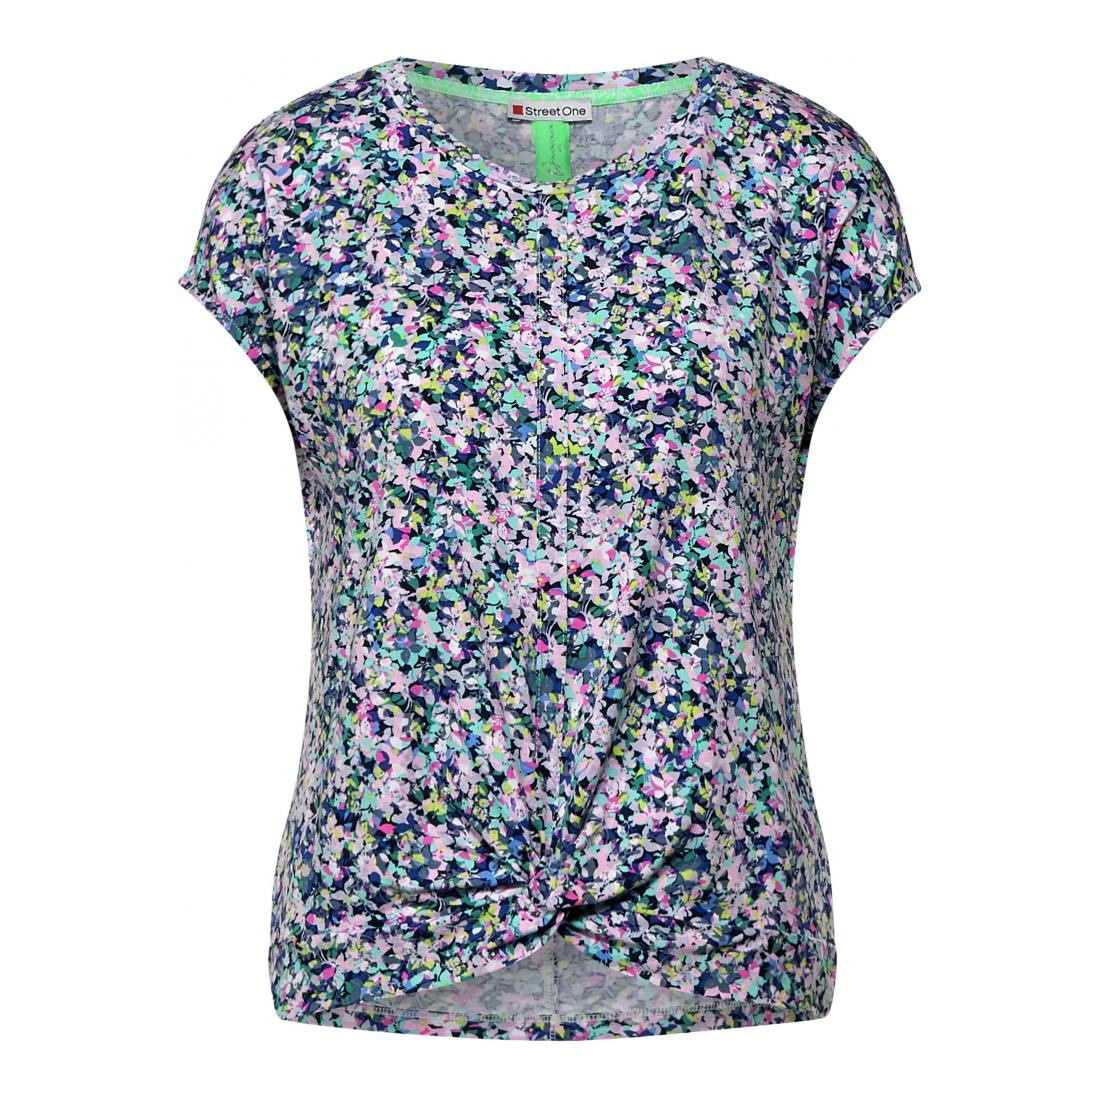 Street One T-Shirt Damen LTD QR printed shirt w.kn